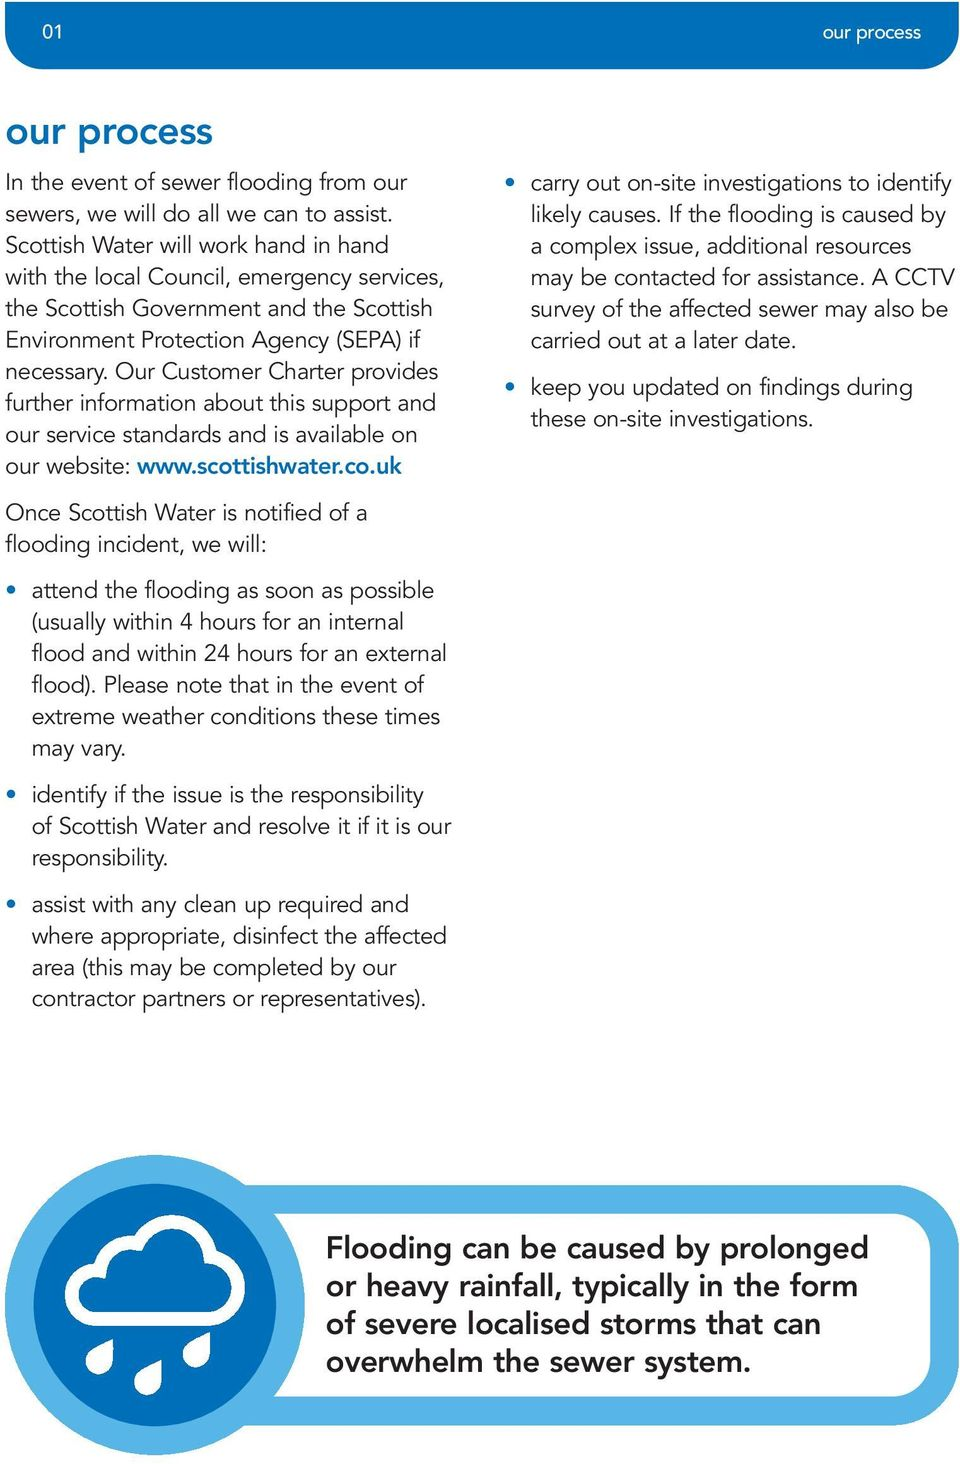 Our Customer Charter provides further information about this support and our service standards and is available on our website: www.scottishwater.co.uk carry out on-site investigations to identify likely causes.